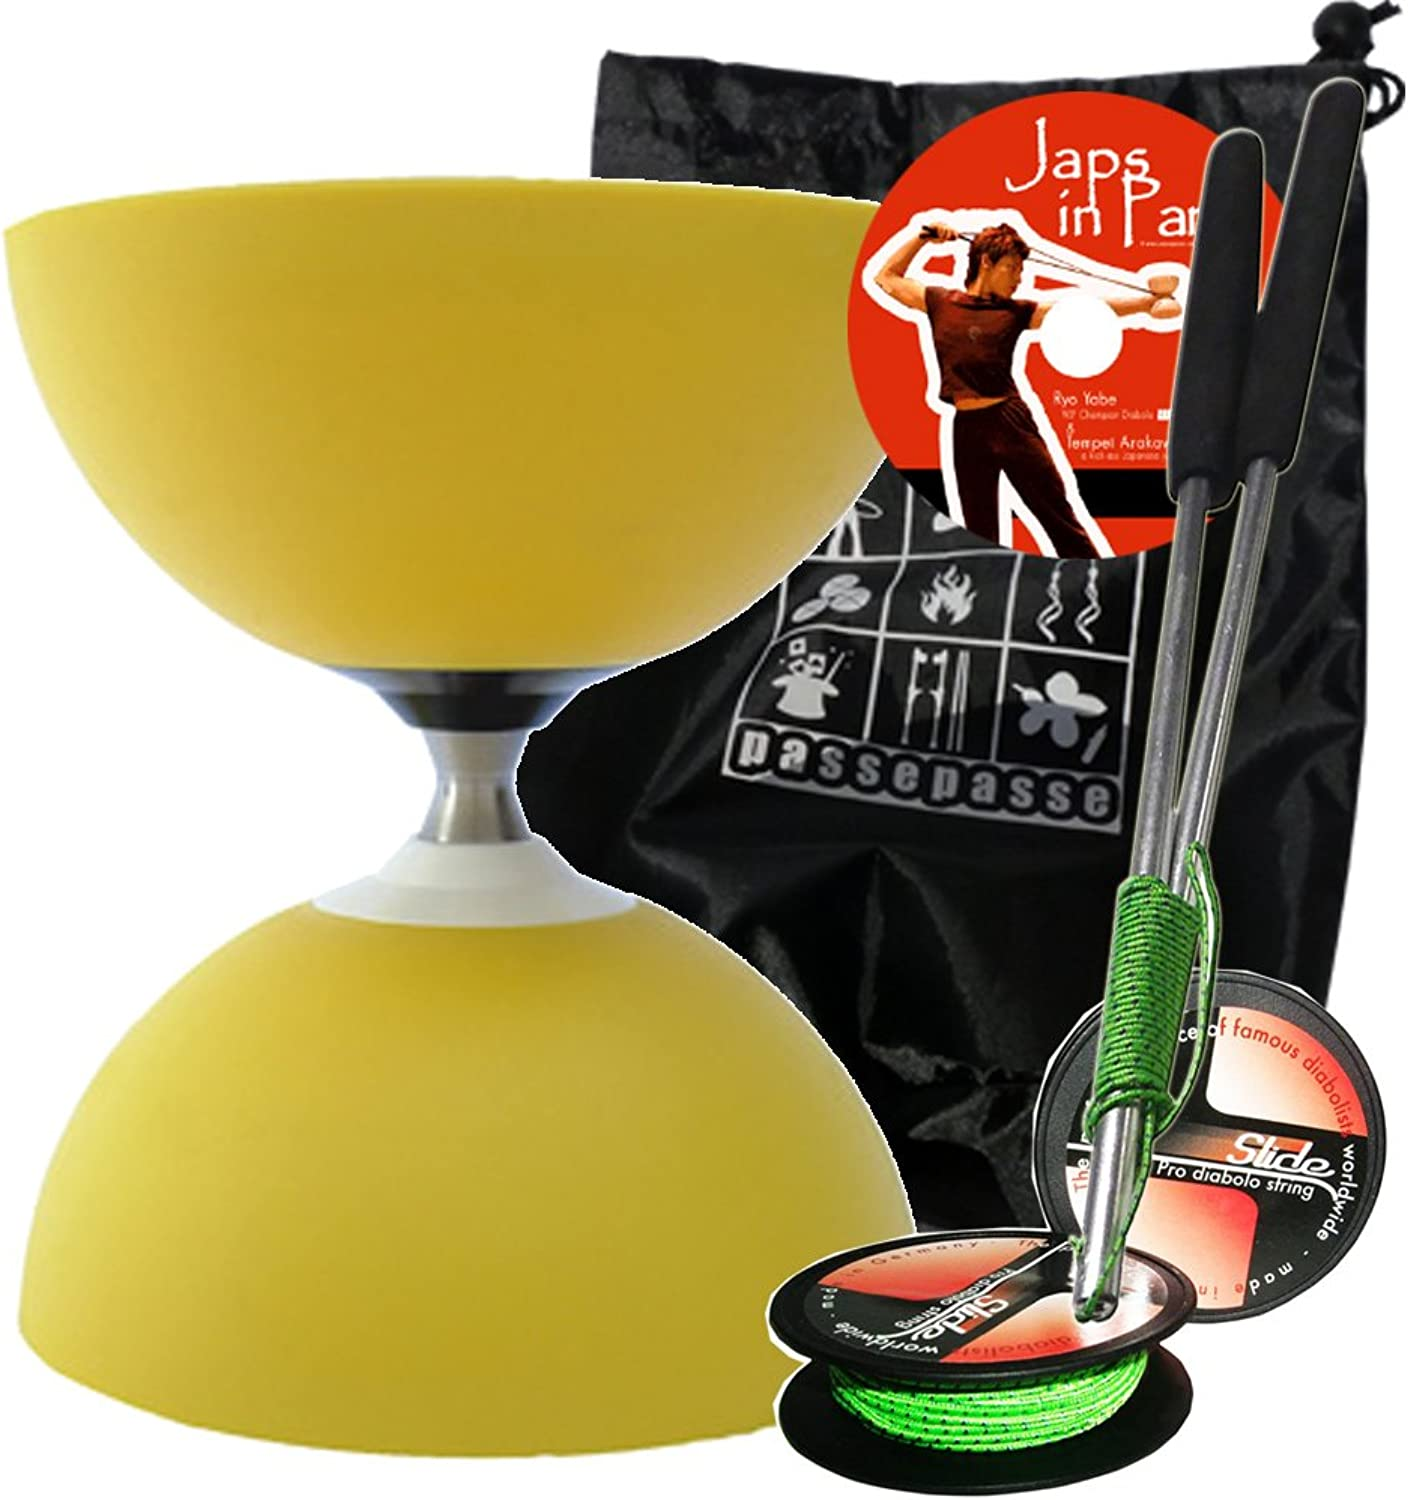 Henrys Circus Diabolo with ''Free'' Hub (one way bearing) Yellow with professional aluminium sticks  SLIDE PRO  10m Diabolo string. comes with a nylon drawstring bag for storage and travel.